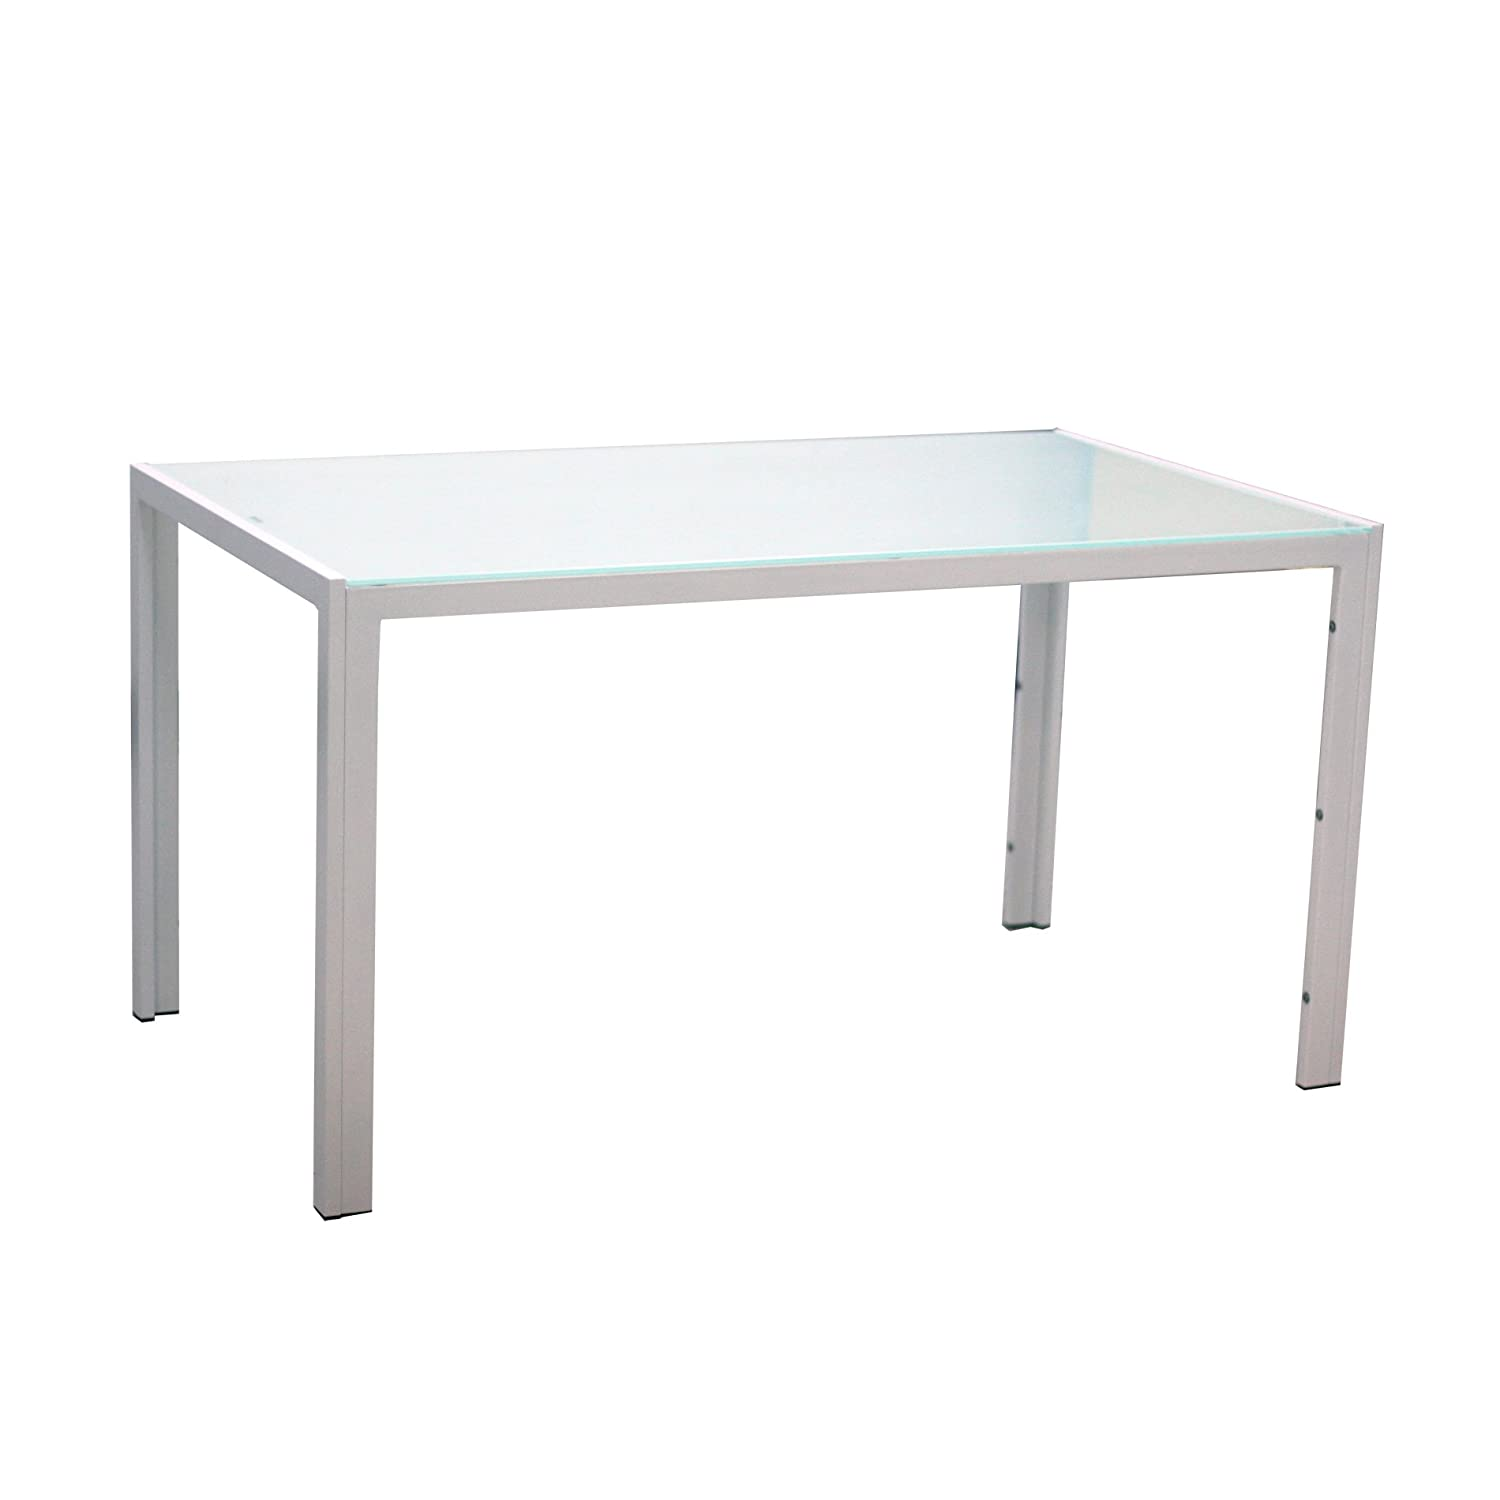 rectangle kitchen table set. EBS® White Glass Dining Table And 4 Chairs Room Furniture Set - Modern Design Faux Leather: Amazon.co.uk: Kitchen \u0026 Home Rectangle